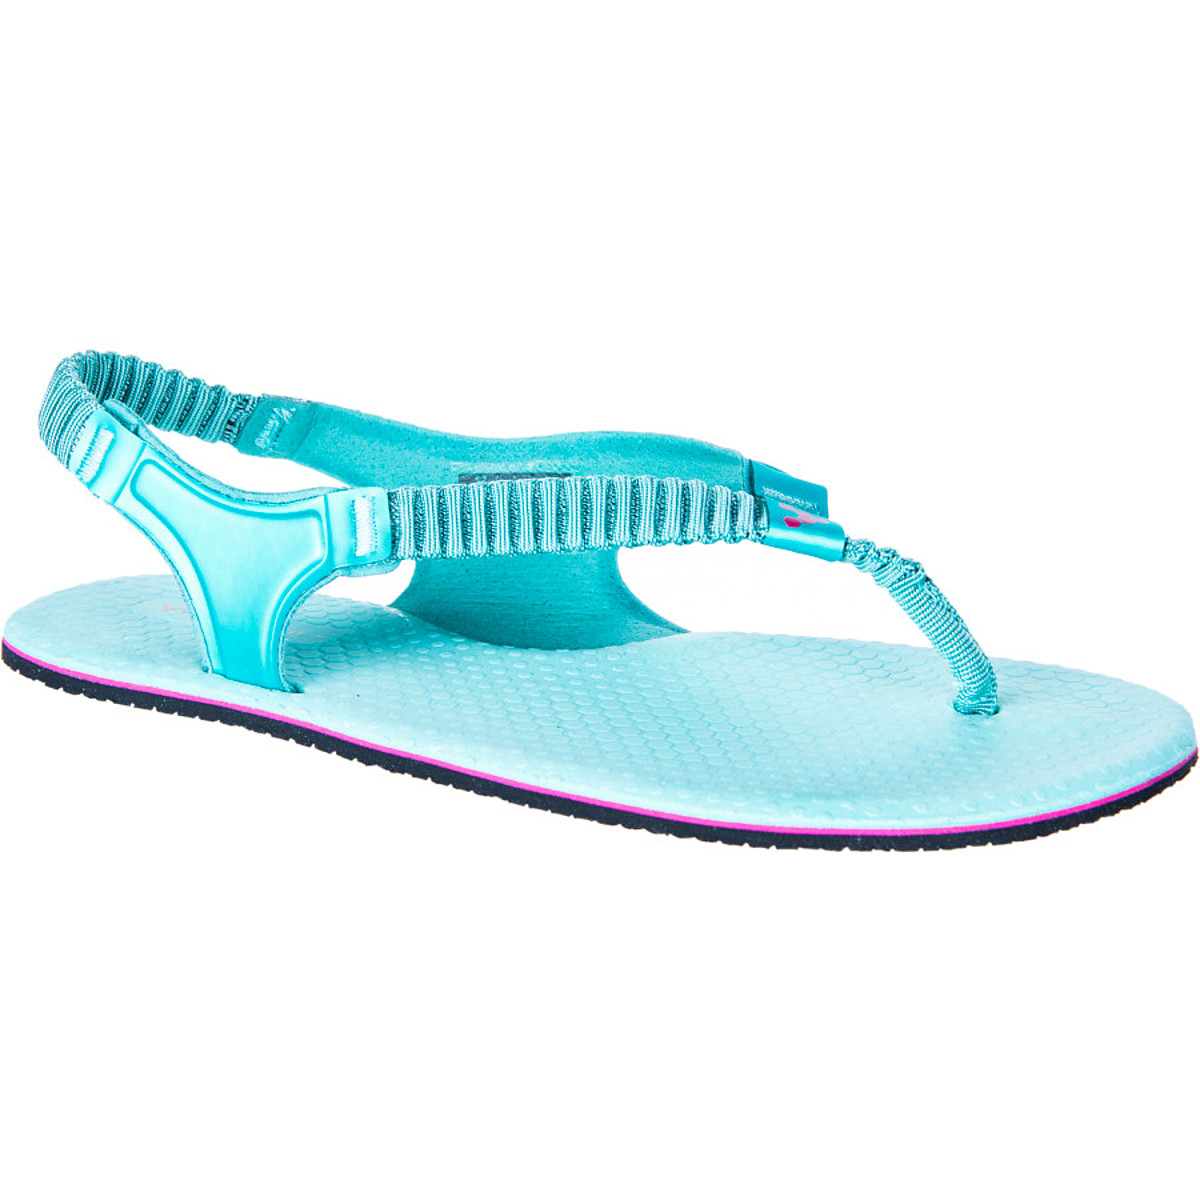 photo of a Vivo Barefoot flip-flop